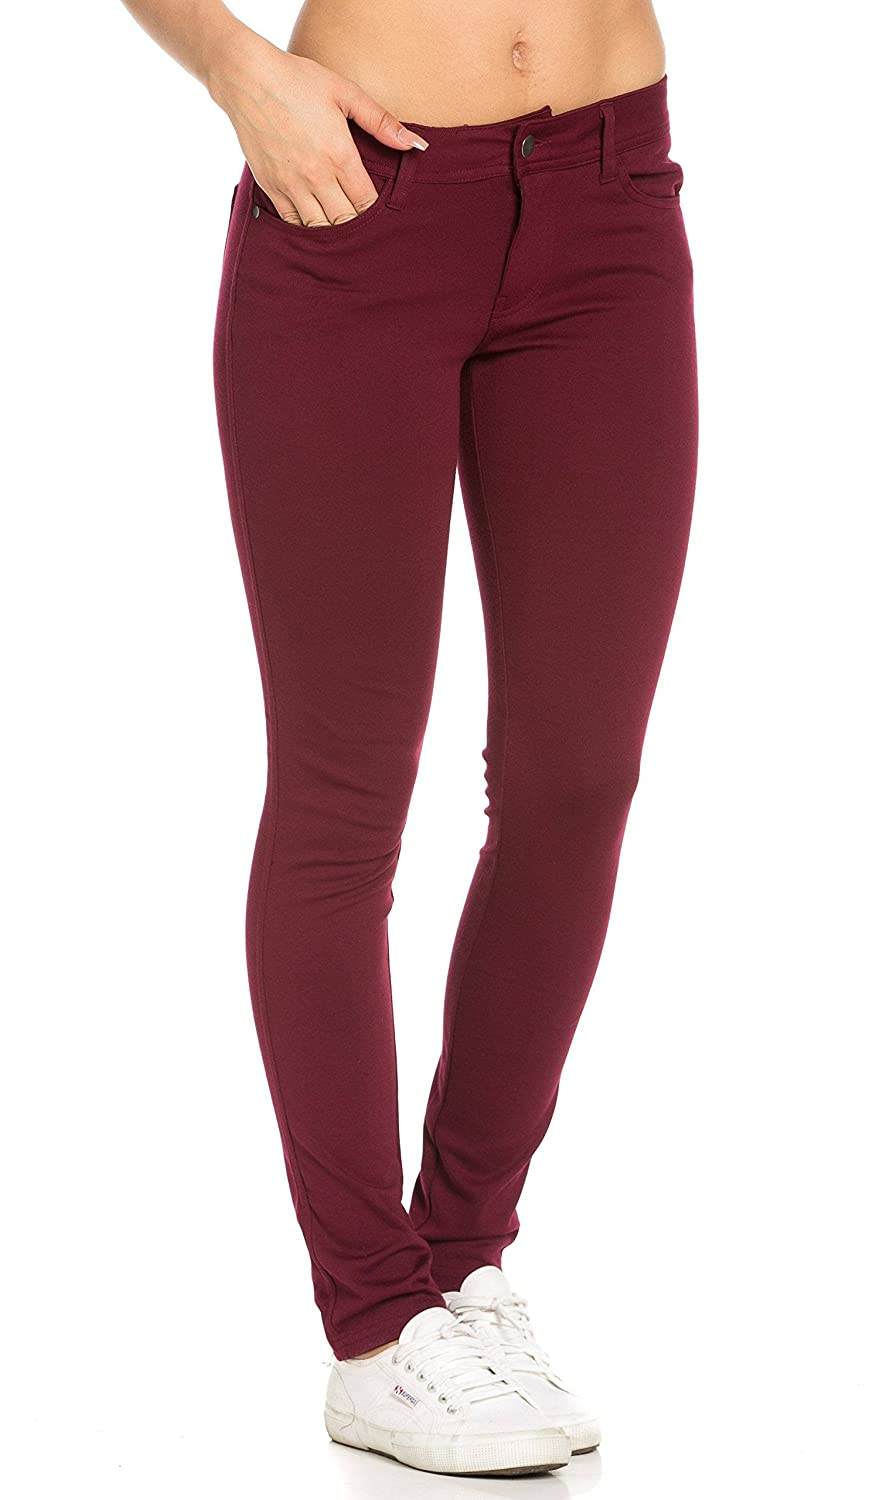 Classic Stretch Knit Skinny Pants in Burgundy (Plus SOHO GLAM Sohogirl.com ACLSKSPNTBRG